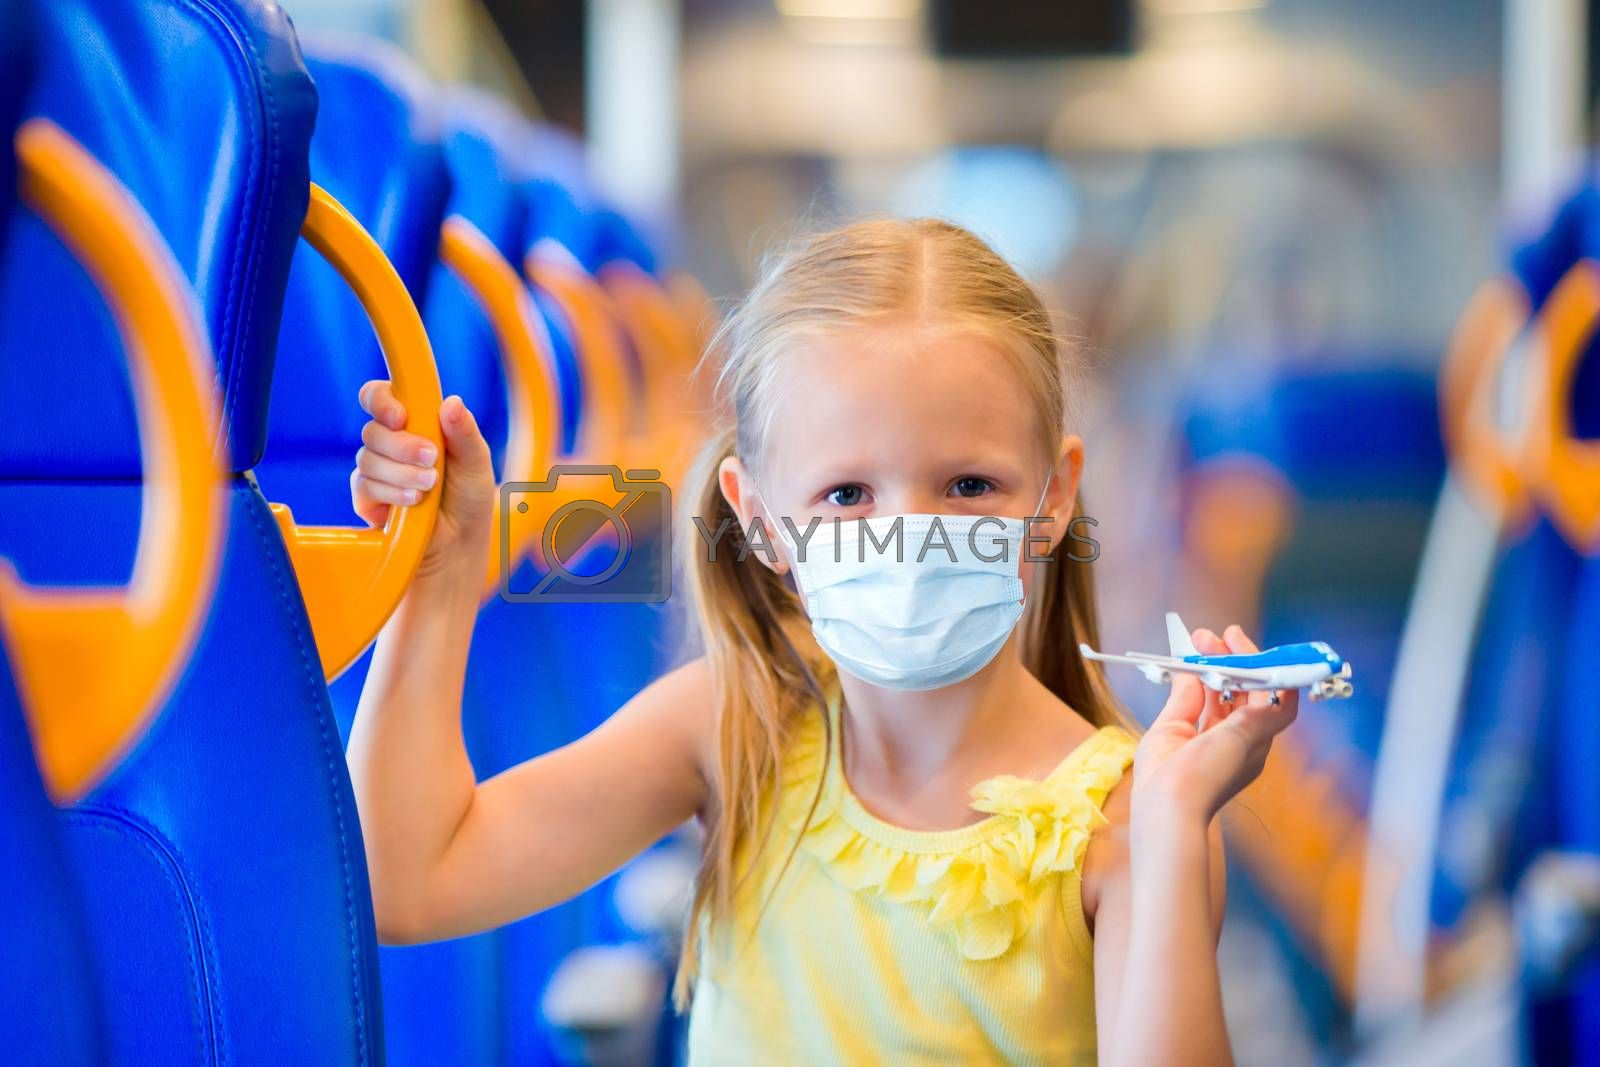 Little girl wearing a mask for prevent virus traveling by train